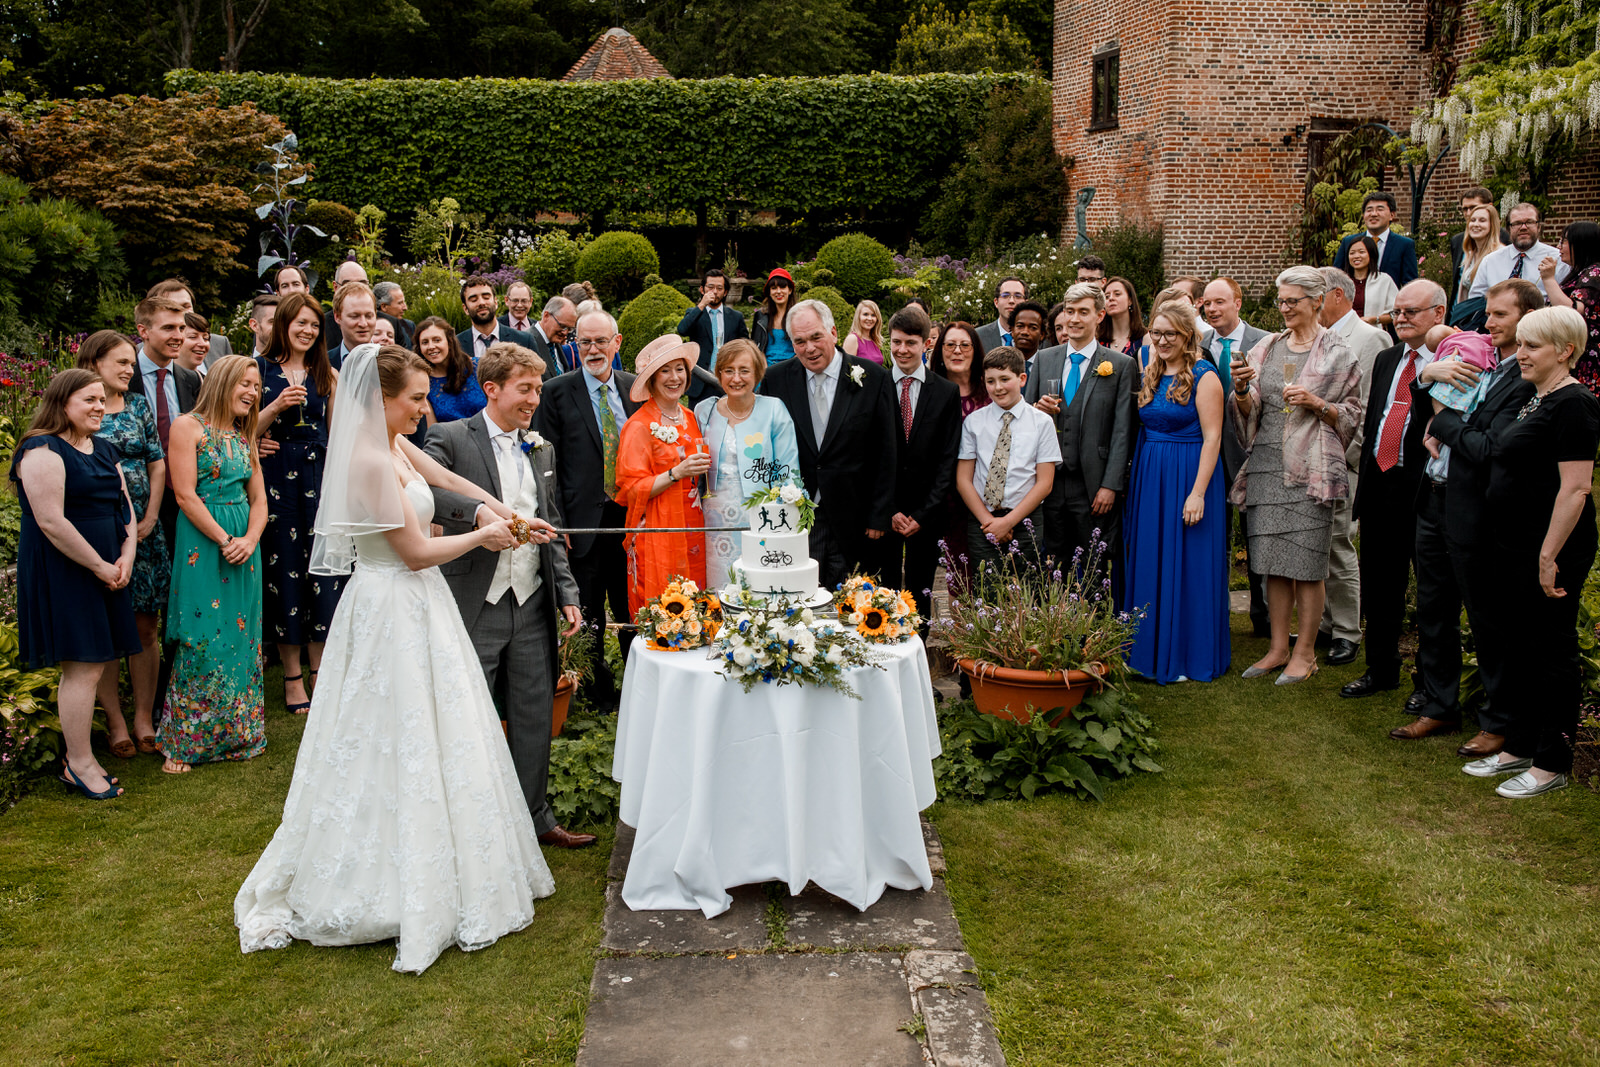 cake cutting at chenies manor house wedding